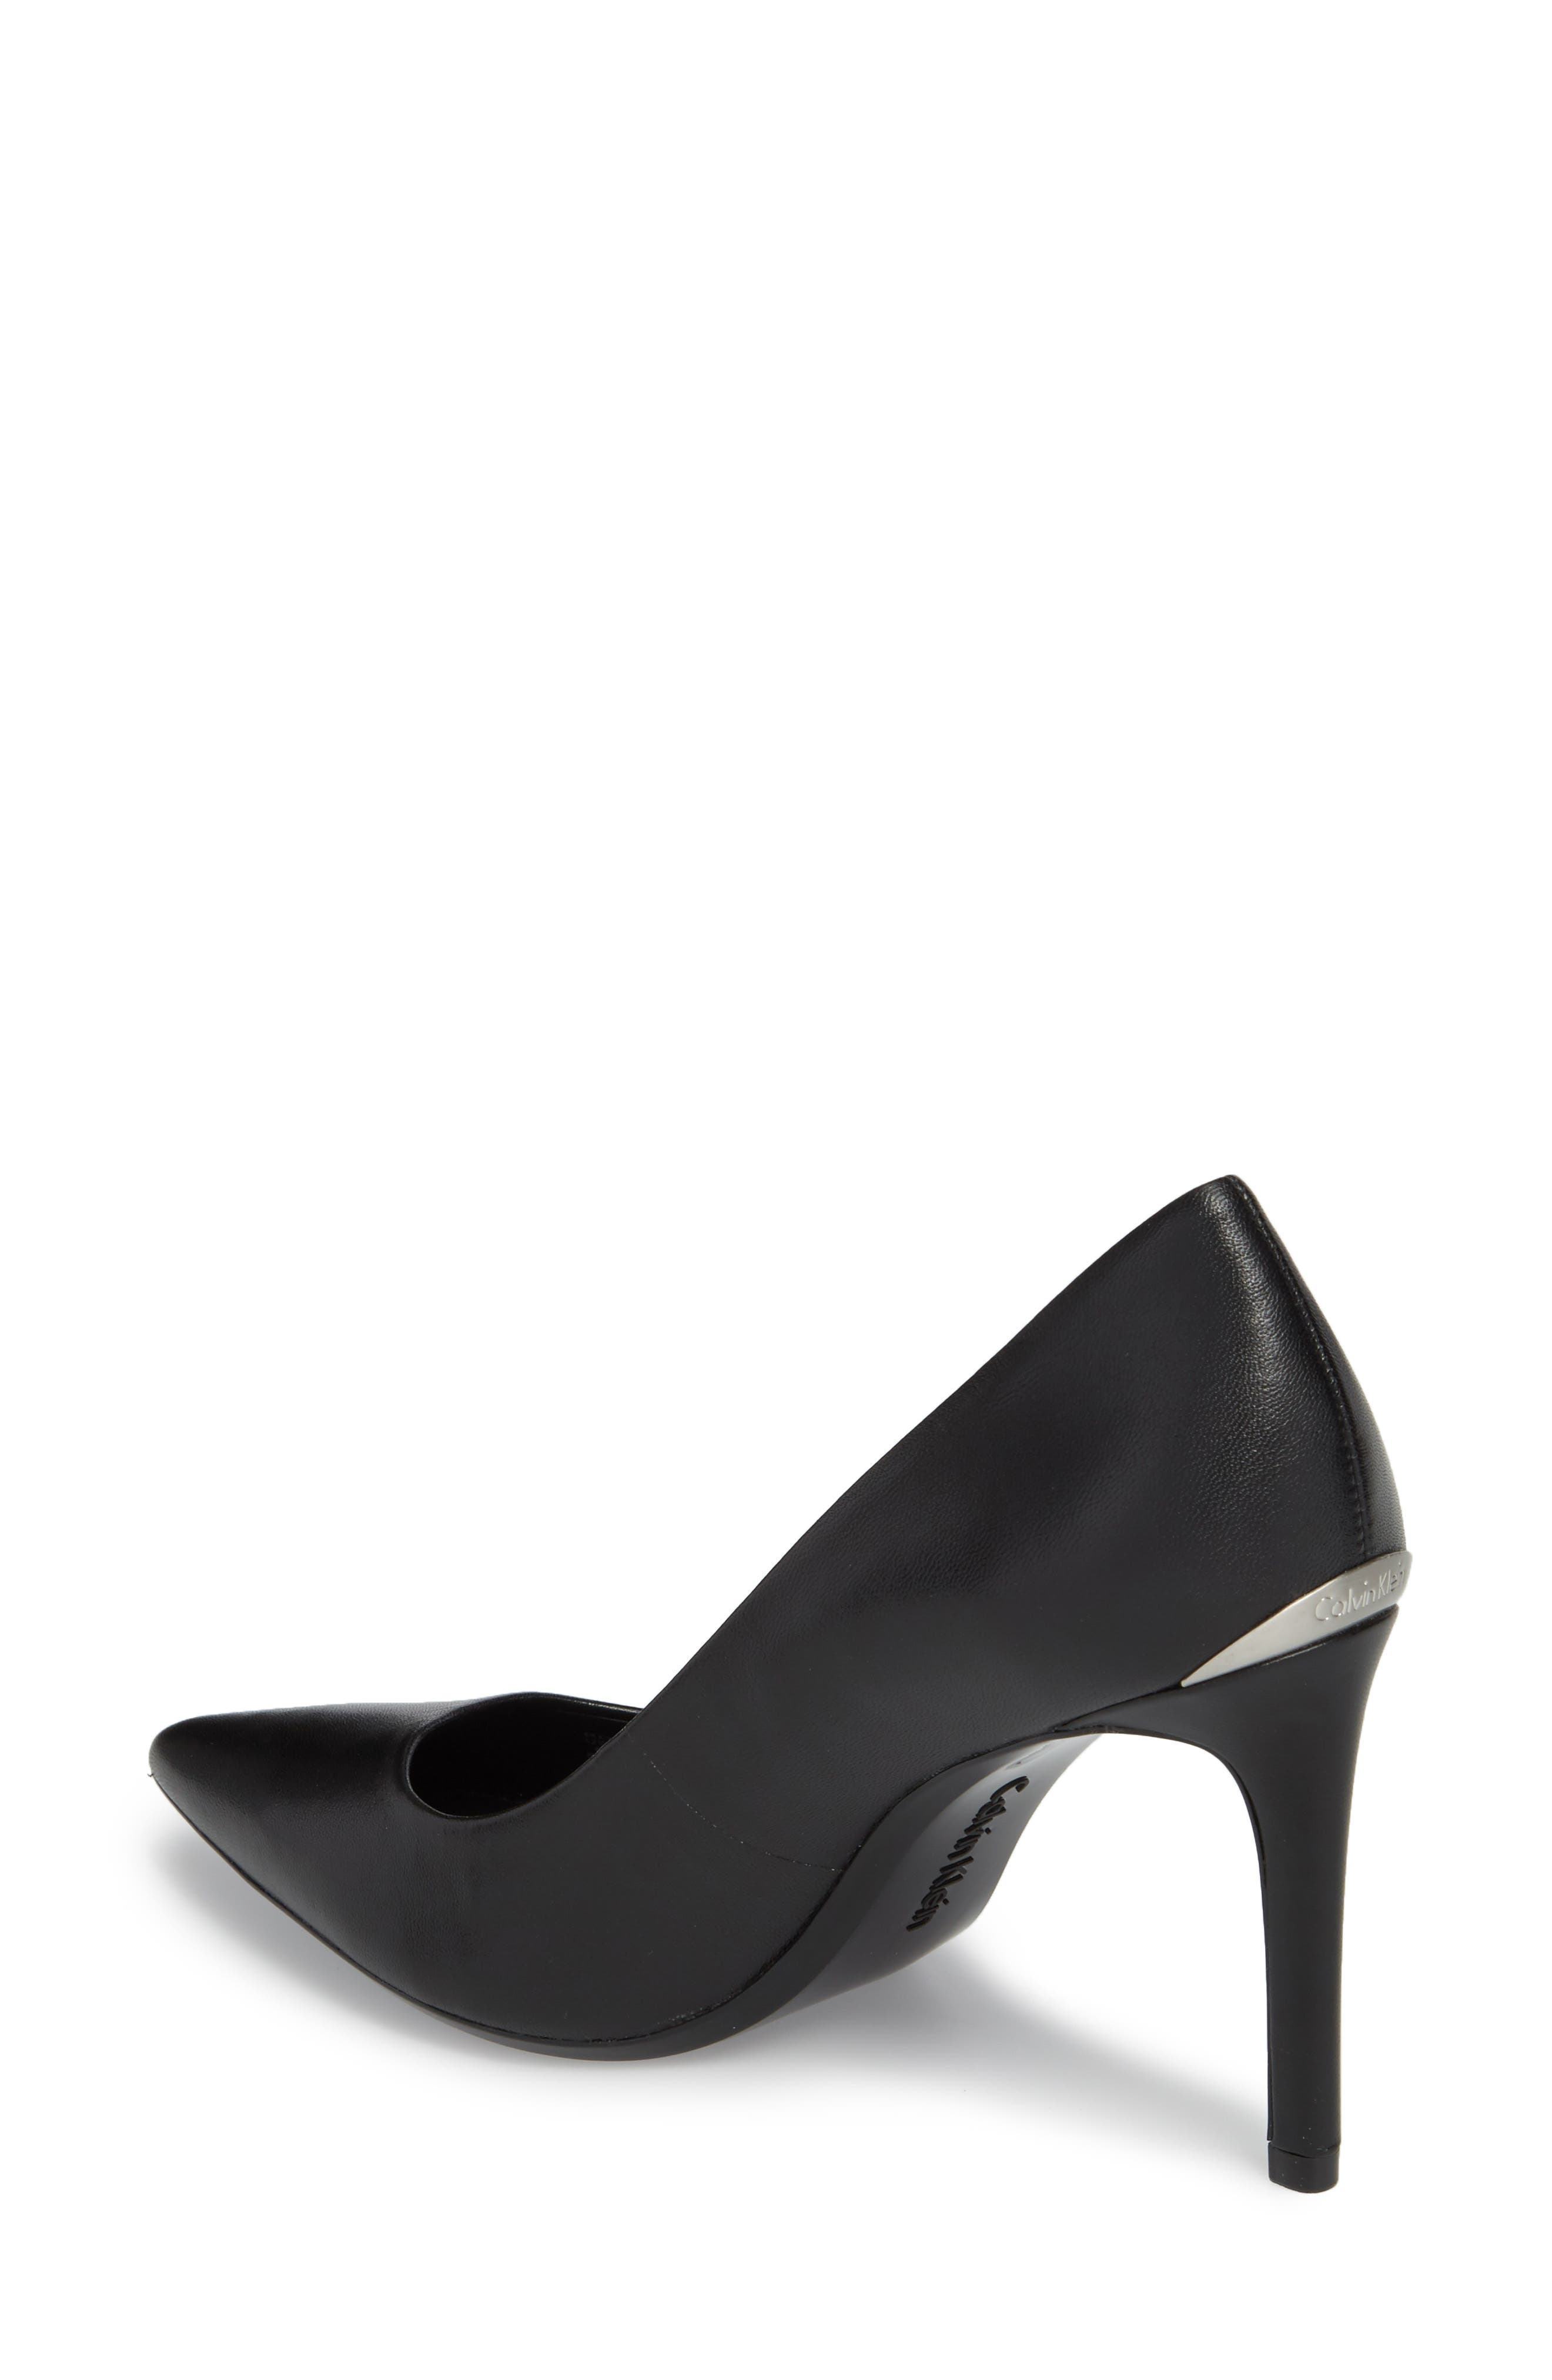 Ronna Pointy Toe Pump,                             Alternate thumbnail 2, color,                             BLACK LEATHER